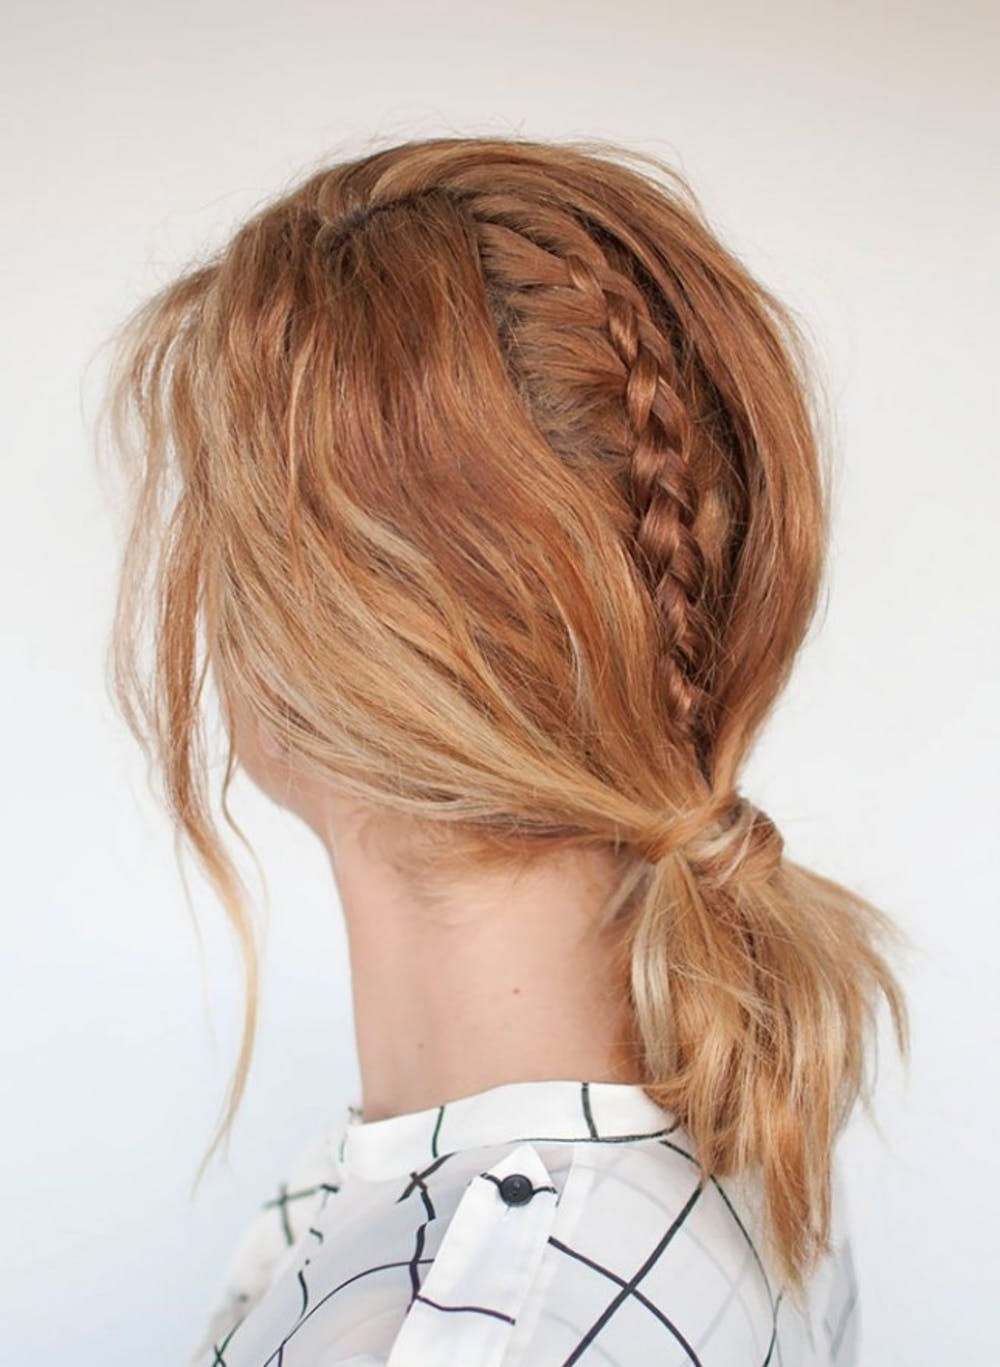 Widely Used Braided Lob Hairstyles Regarding 73 Bob And Lob Hairstyles That Will Make You Want Short Hair (View 14 of 15)